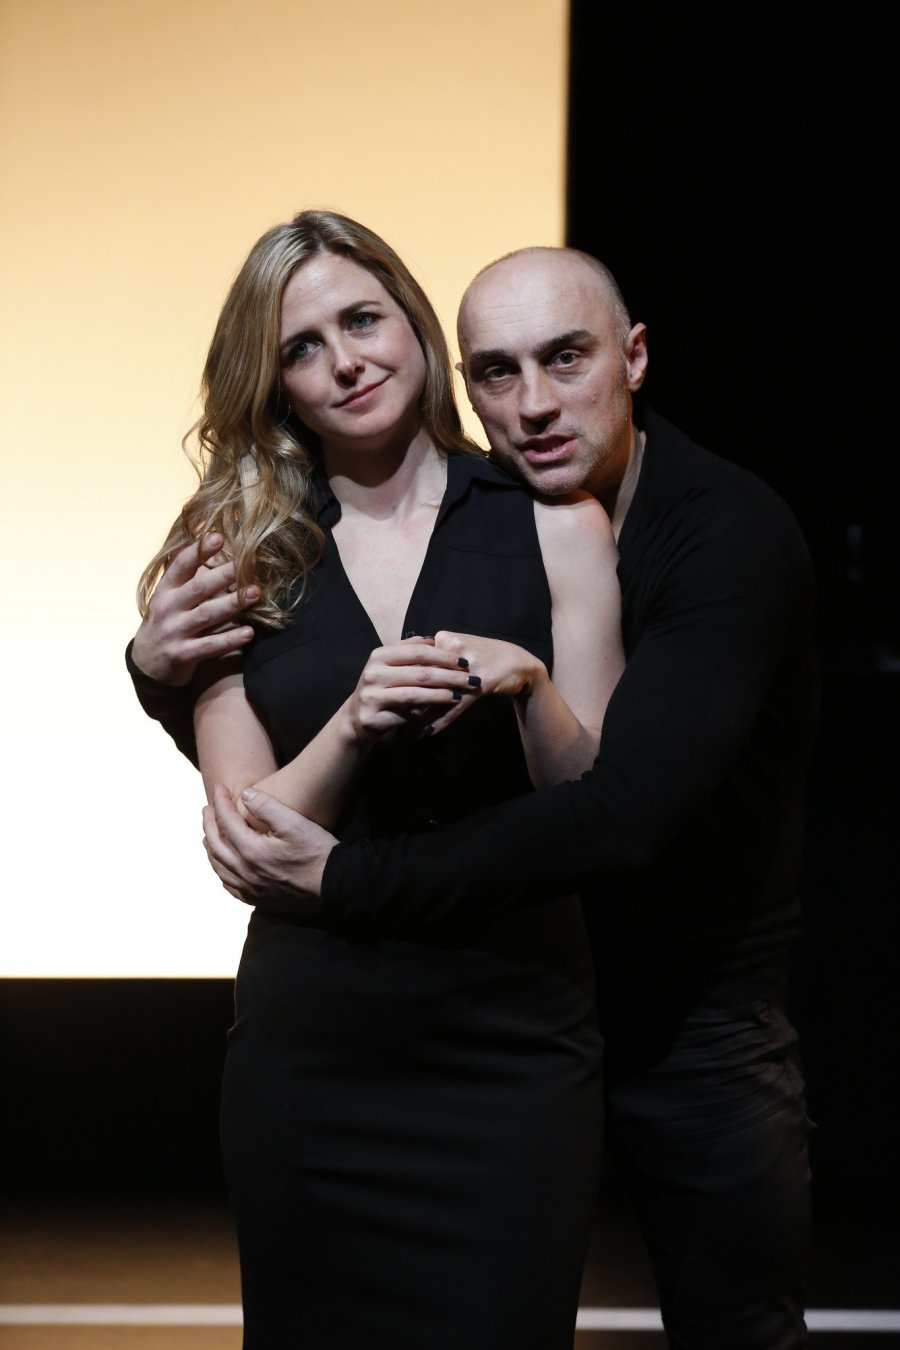 Clea Alsip and Tony Maumovski in Wide Awake Hearts at 59E59 Theaters, January 2016